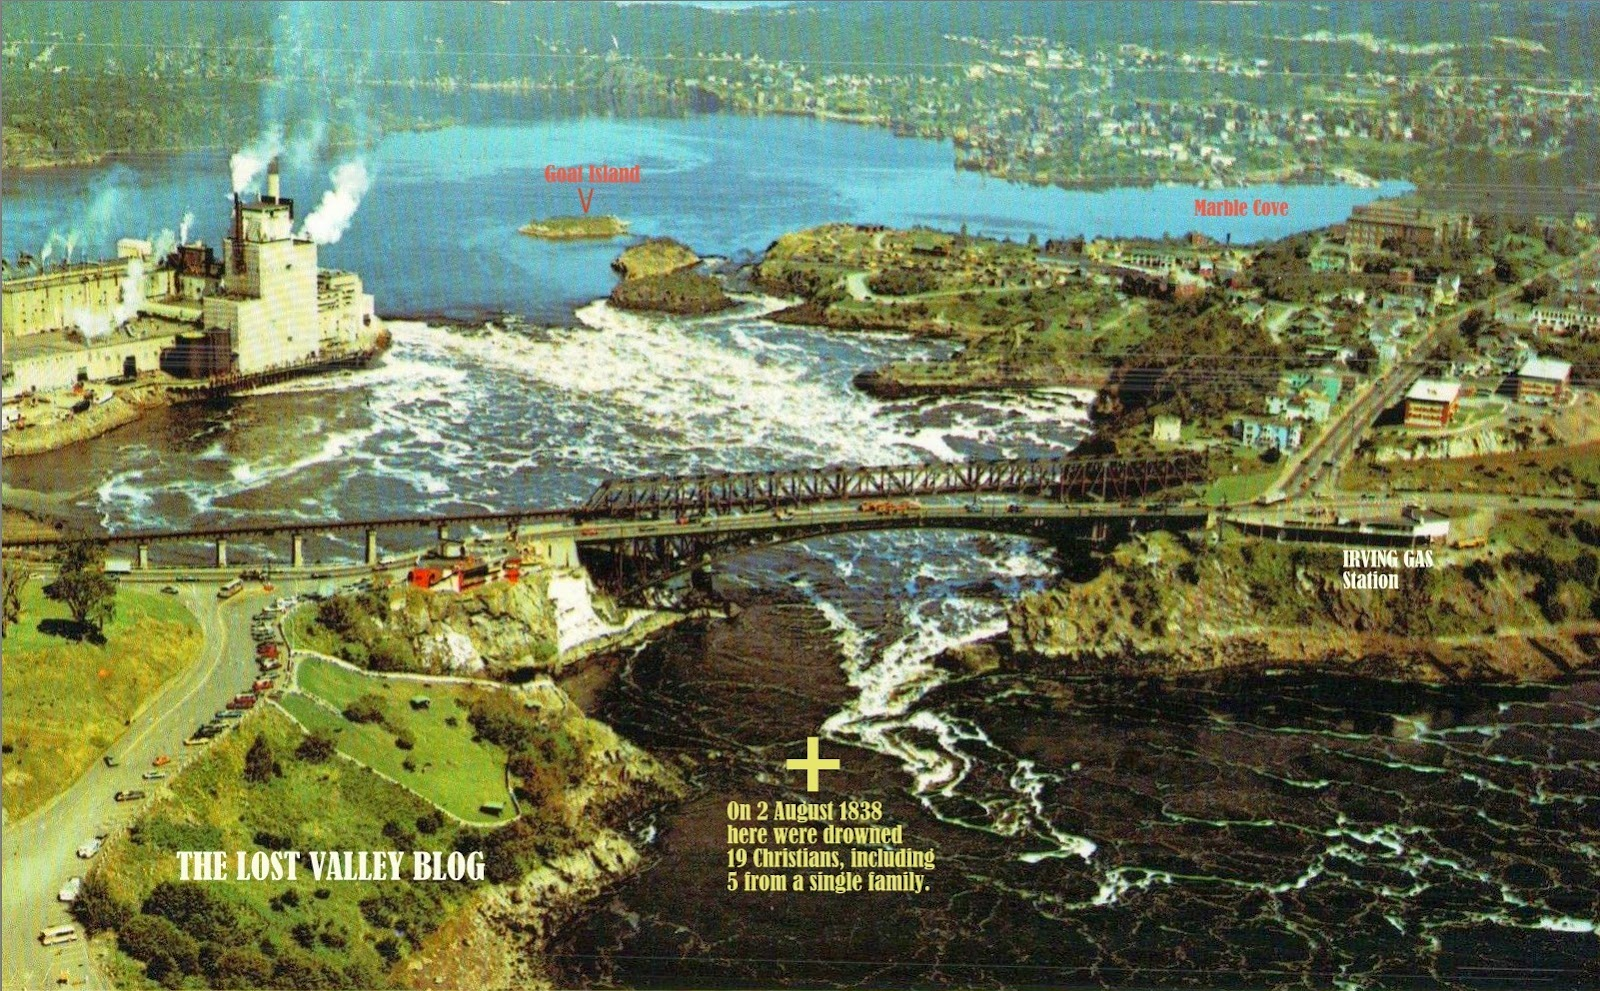 Reversing Falls Tragedies The Mass Drowning Of 1838 And Hermit Bad Boy Buggy Ambush Wiring Diagram 19 Christians Drowned At St John Nb August